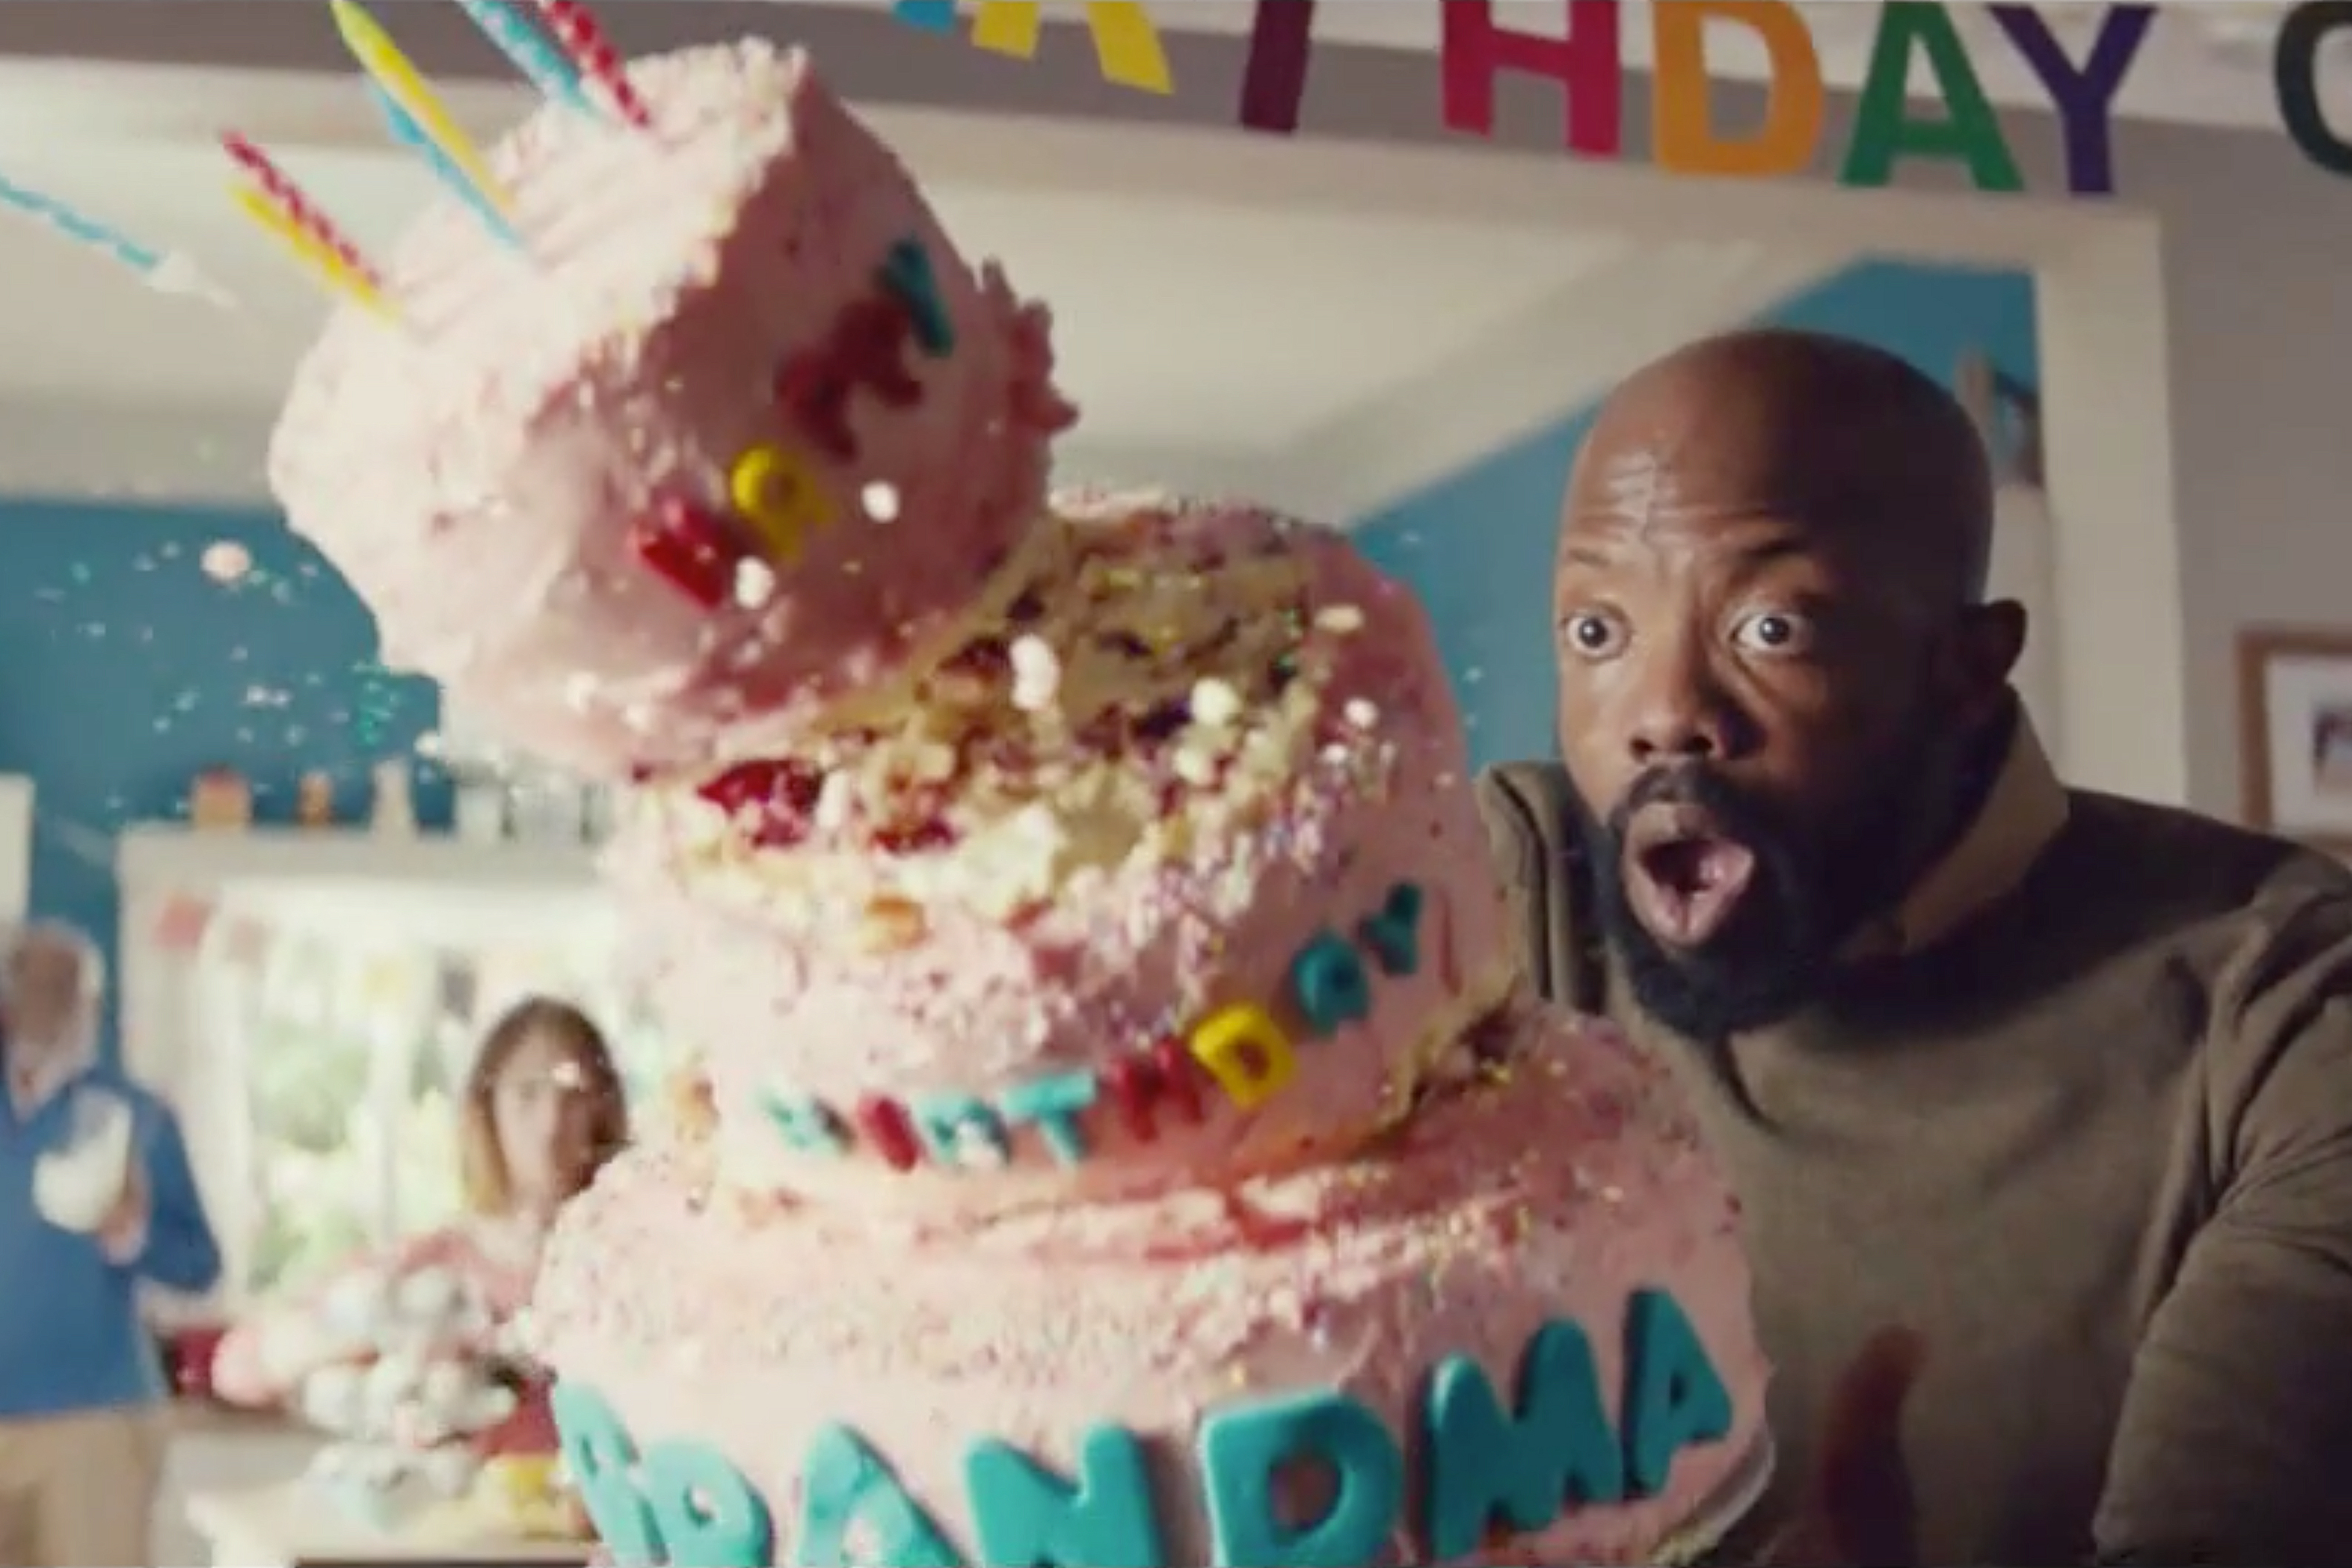 Watch the newest commercials on TV from Progressive, Amazon, TurboTax and more